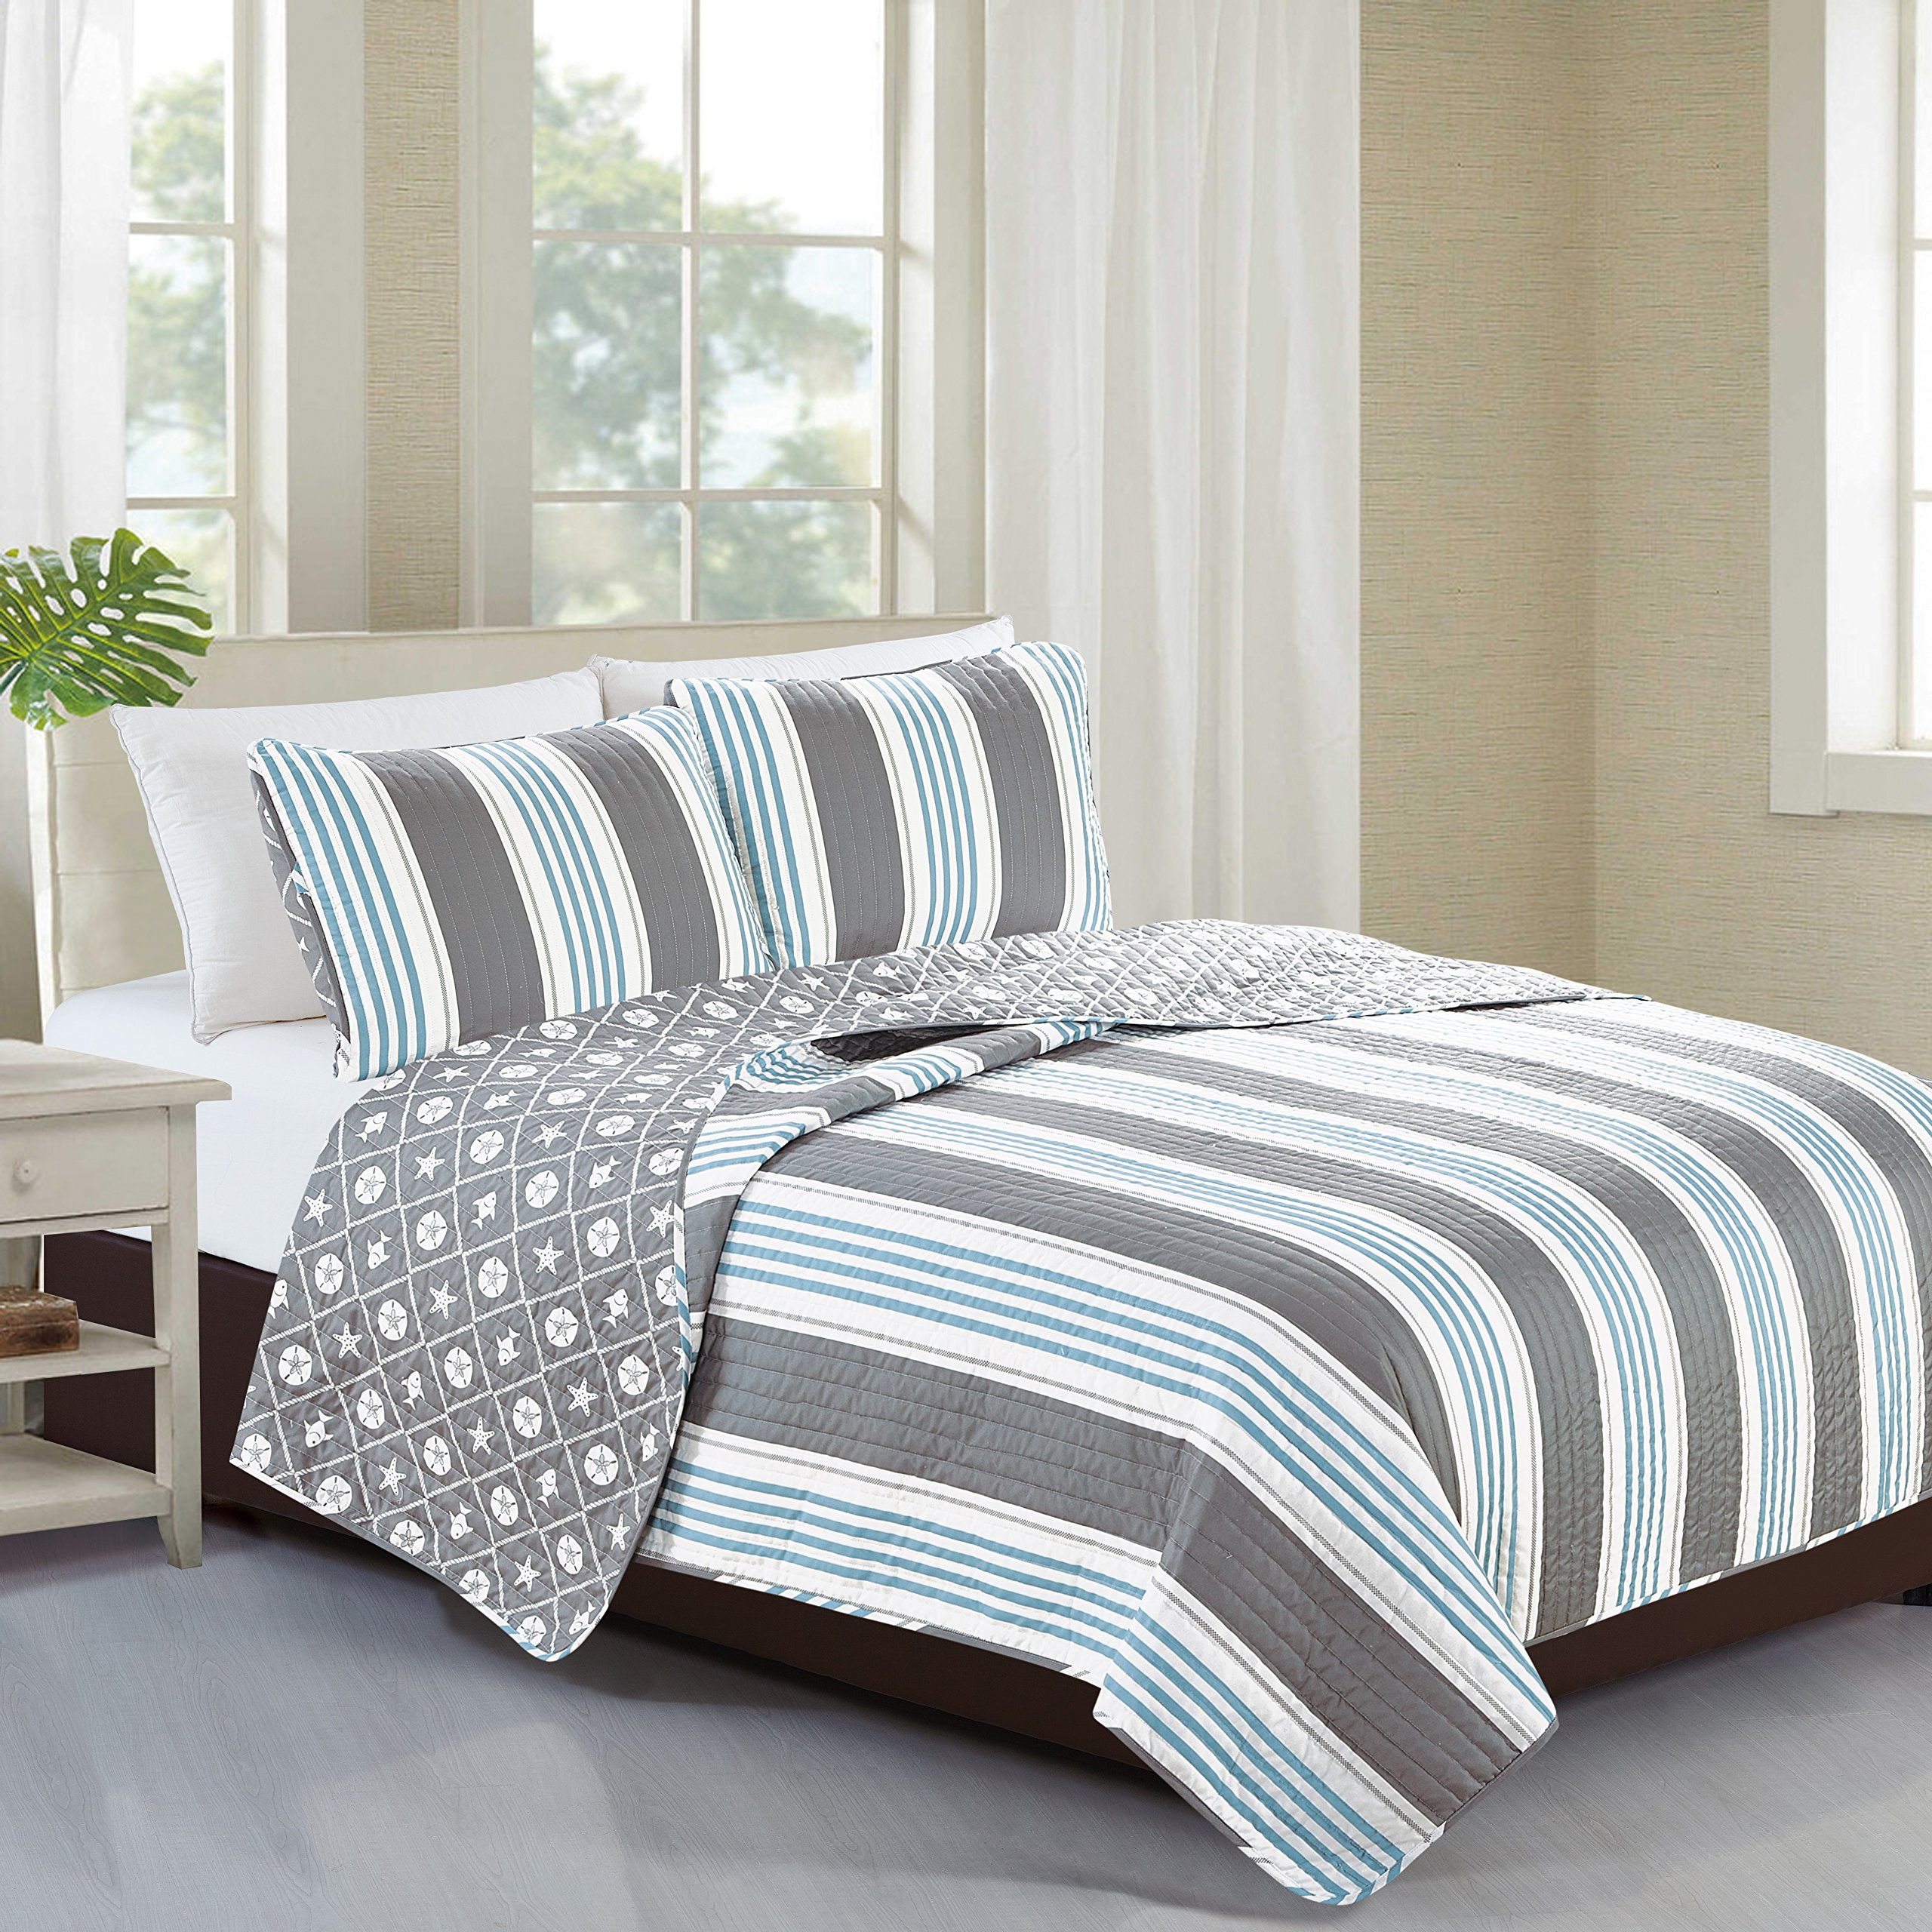 bedding set conrad duvet com walmart king cottage stone ip